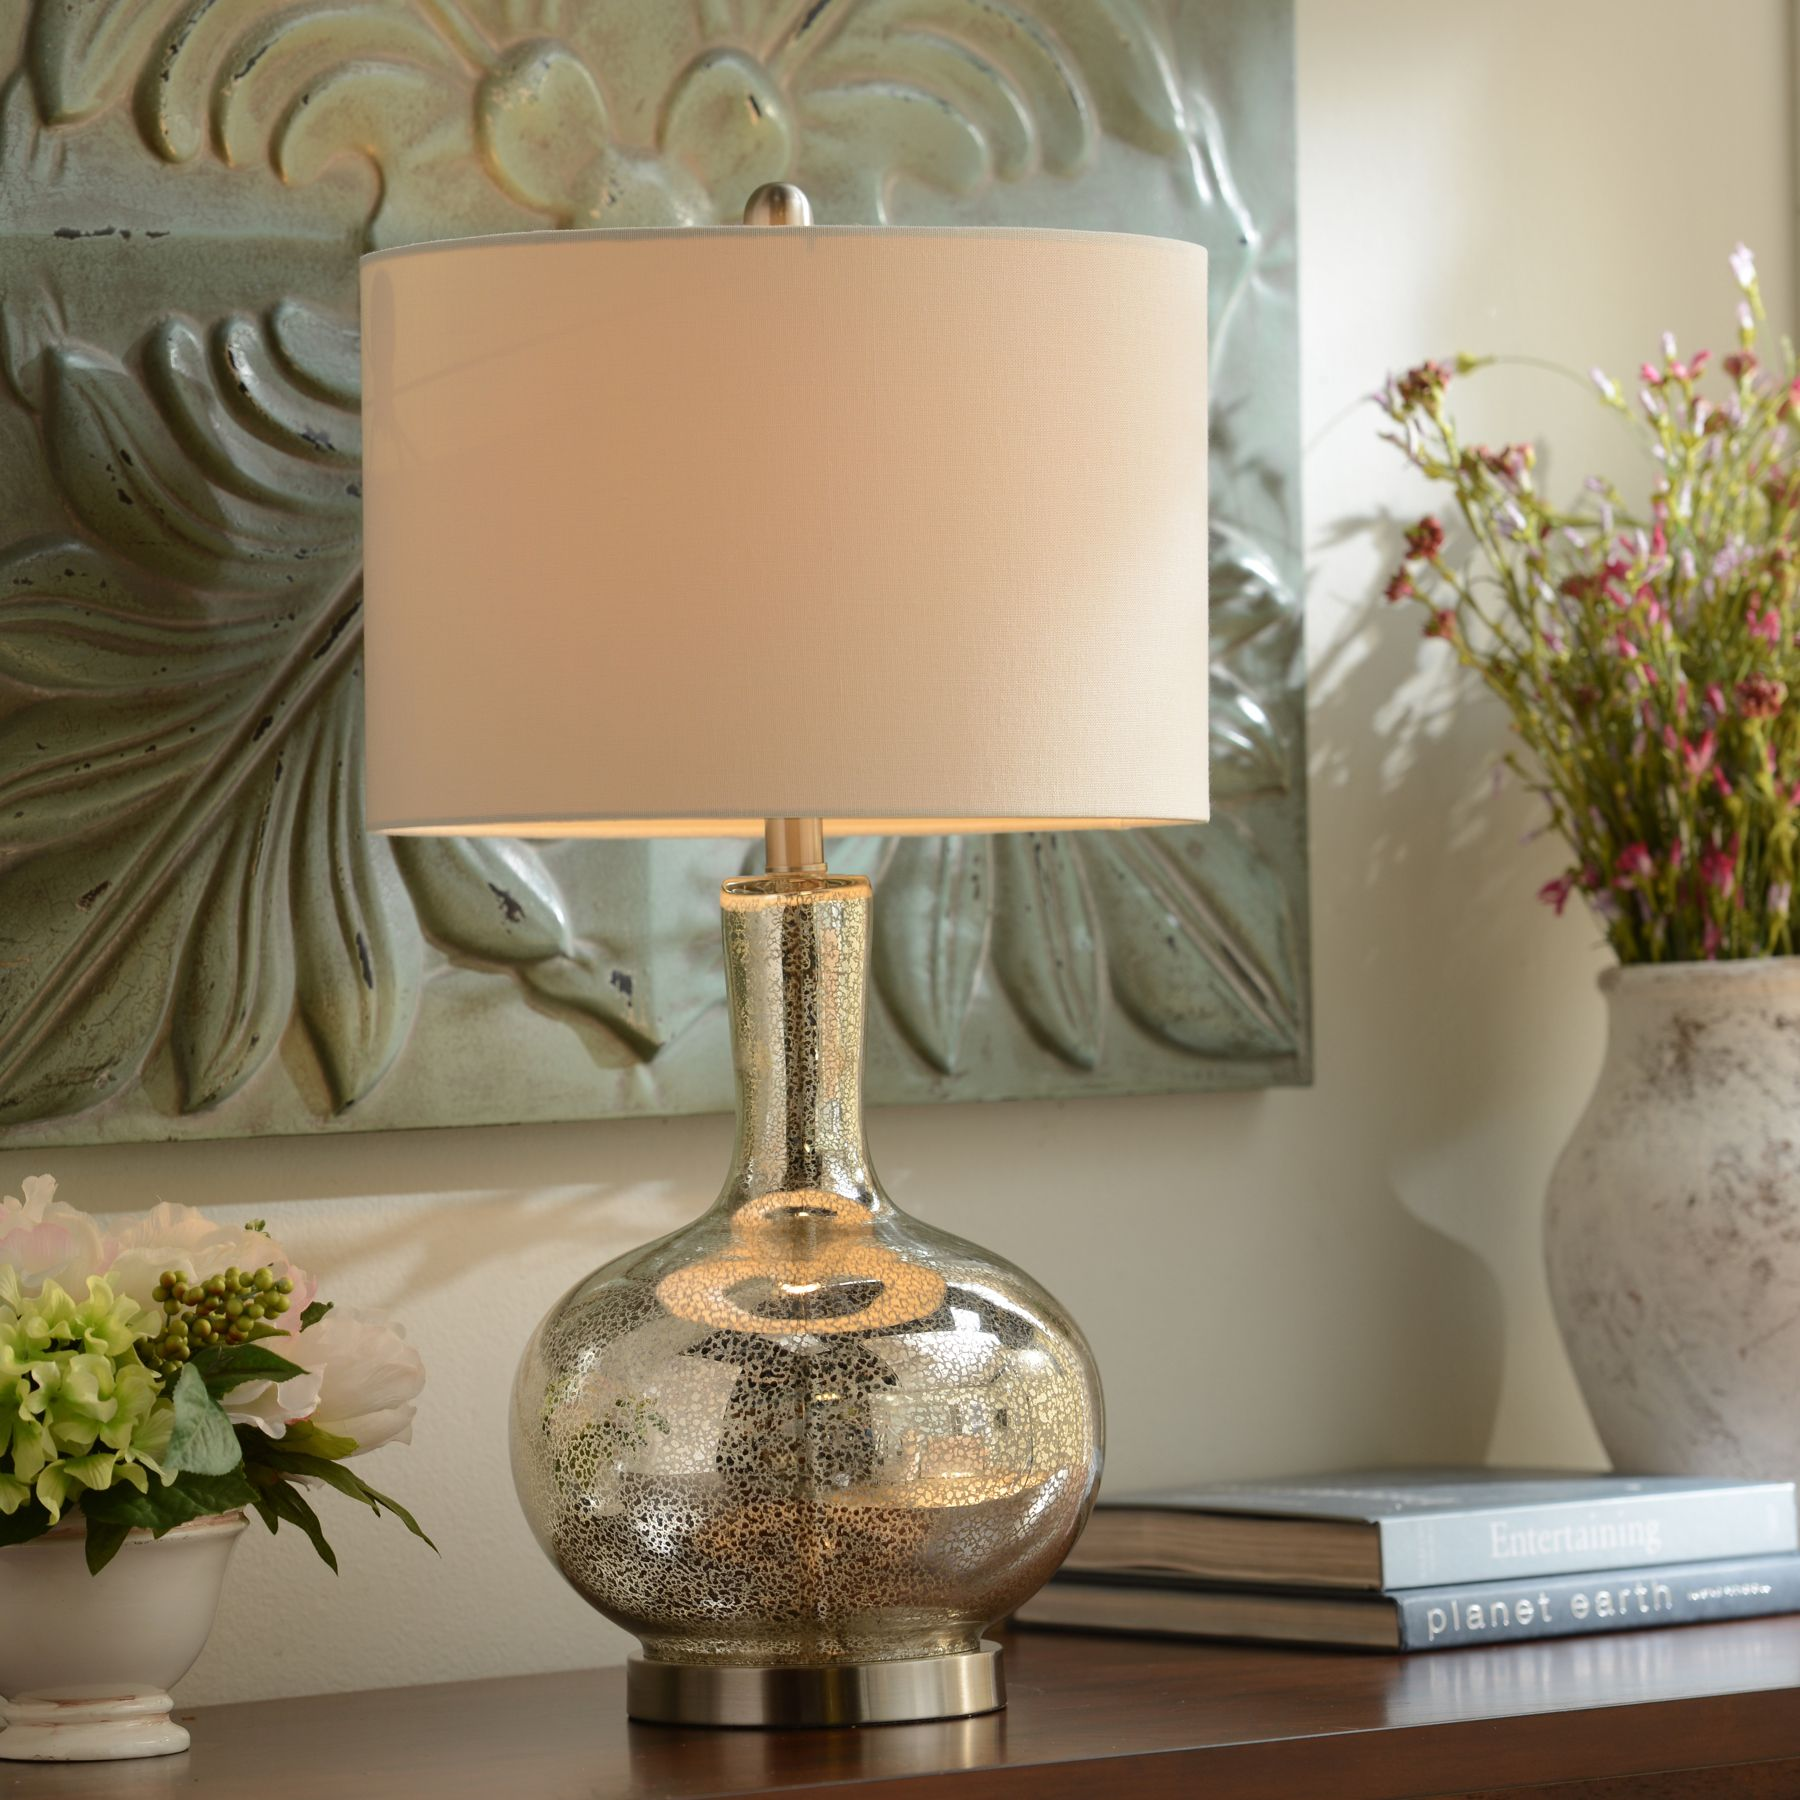 Step Up Your Style With Mercury Glass Lamps Available In Both Gold And Silver Kirkland S Dynia Table Mercury Glass Table Lamp Glass Table Mercury Glass Lamp